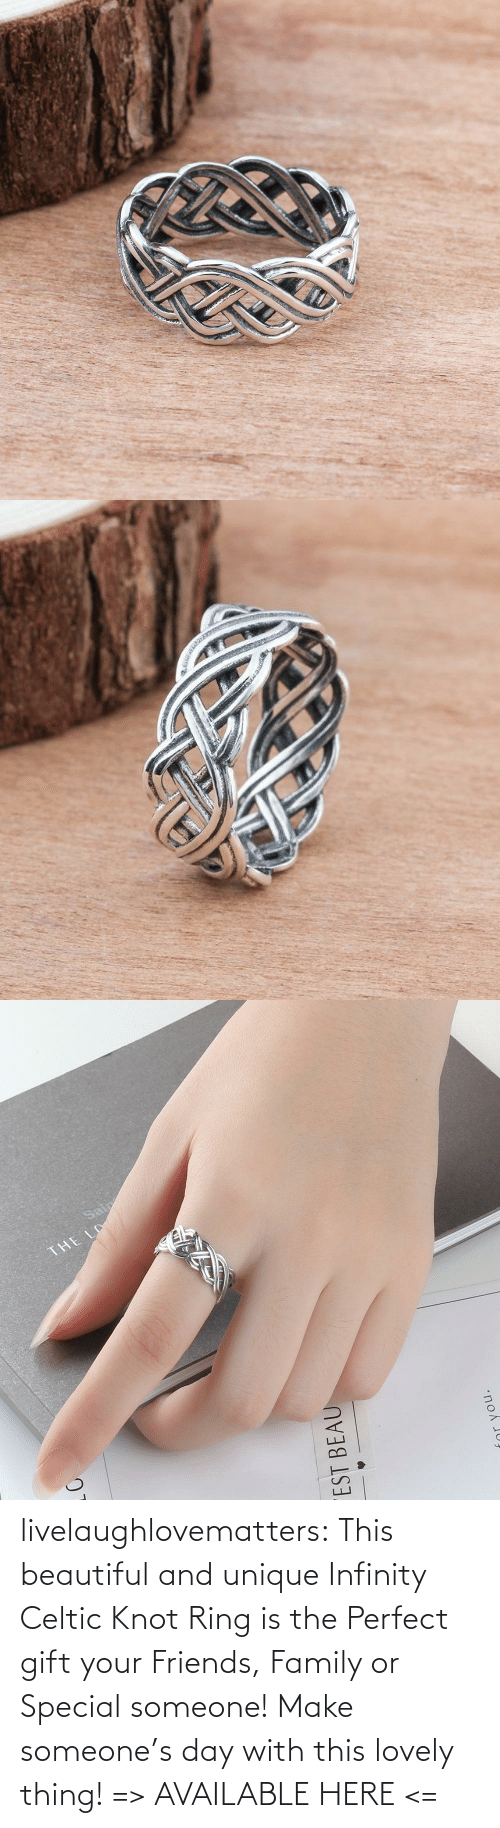 ring: livelaughlovematters:  This beautiful and unique Infinity Celtic Knot Ring is the Perfect gift your Friends, Family or Special someone! Make someone's day with this lovely thing! => AVAILABLE HERE <=